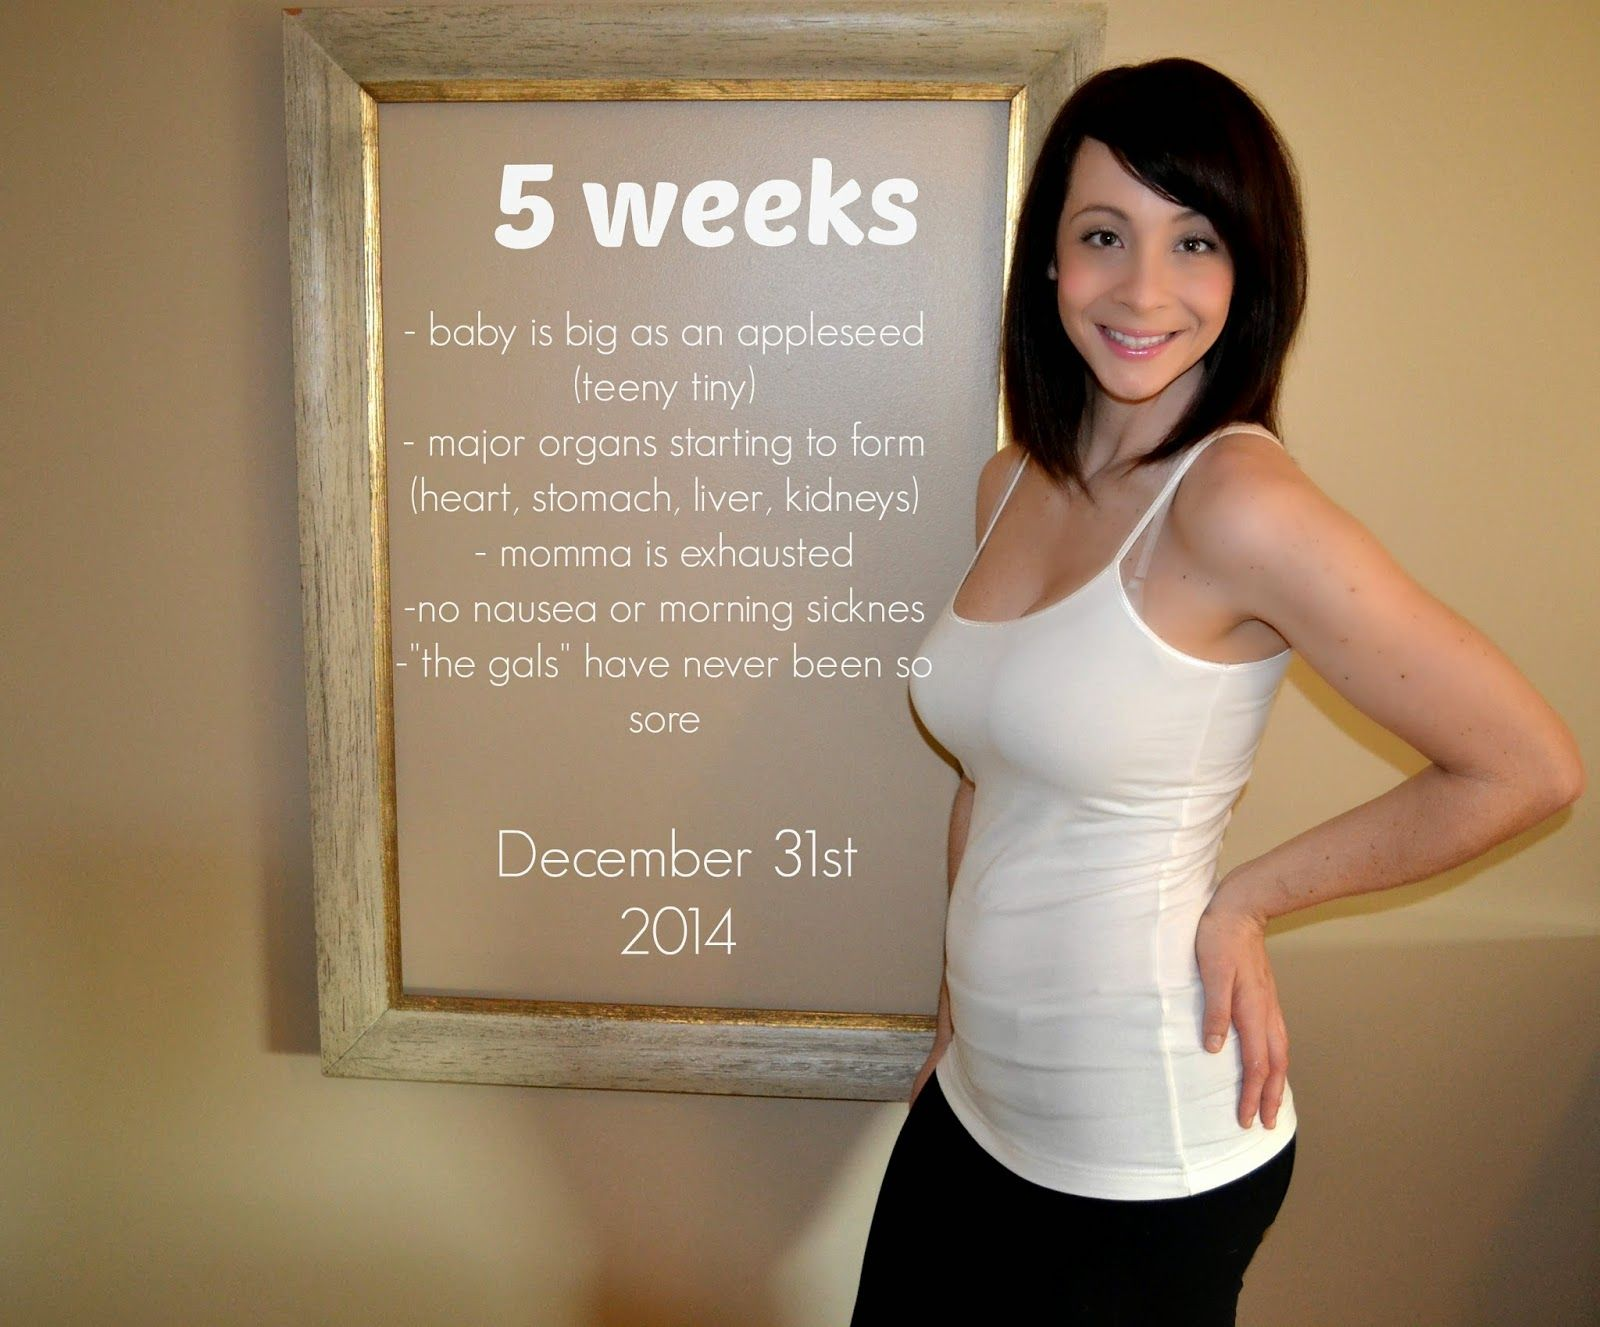 4 Weeks Pregnant Days 5 Belly